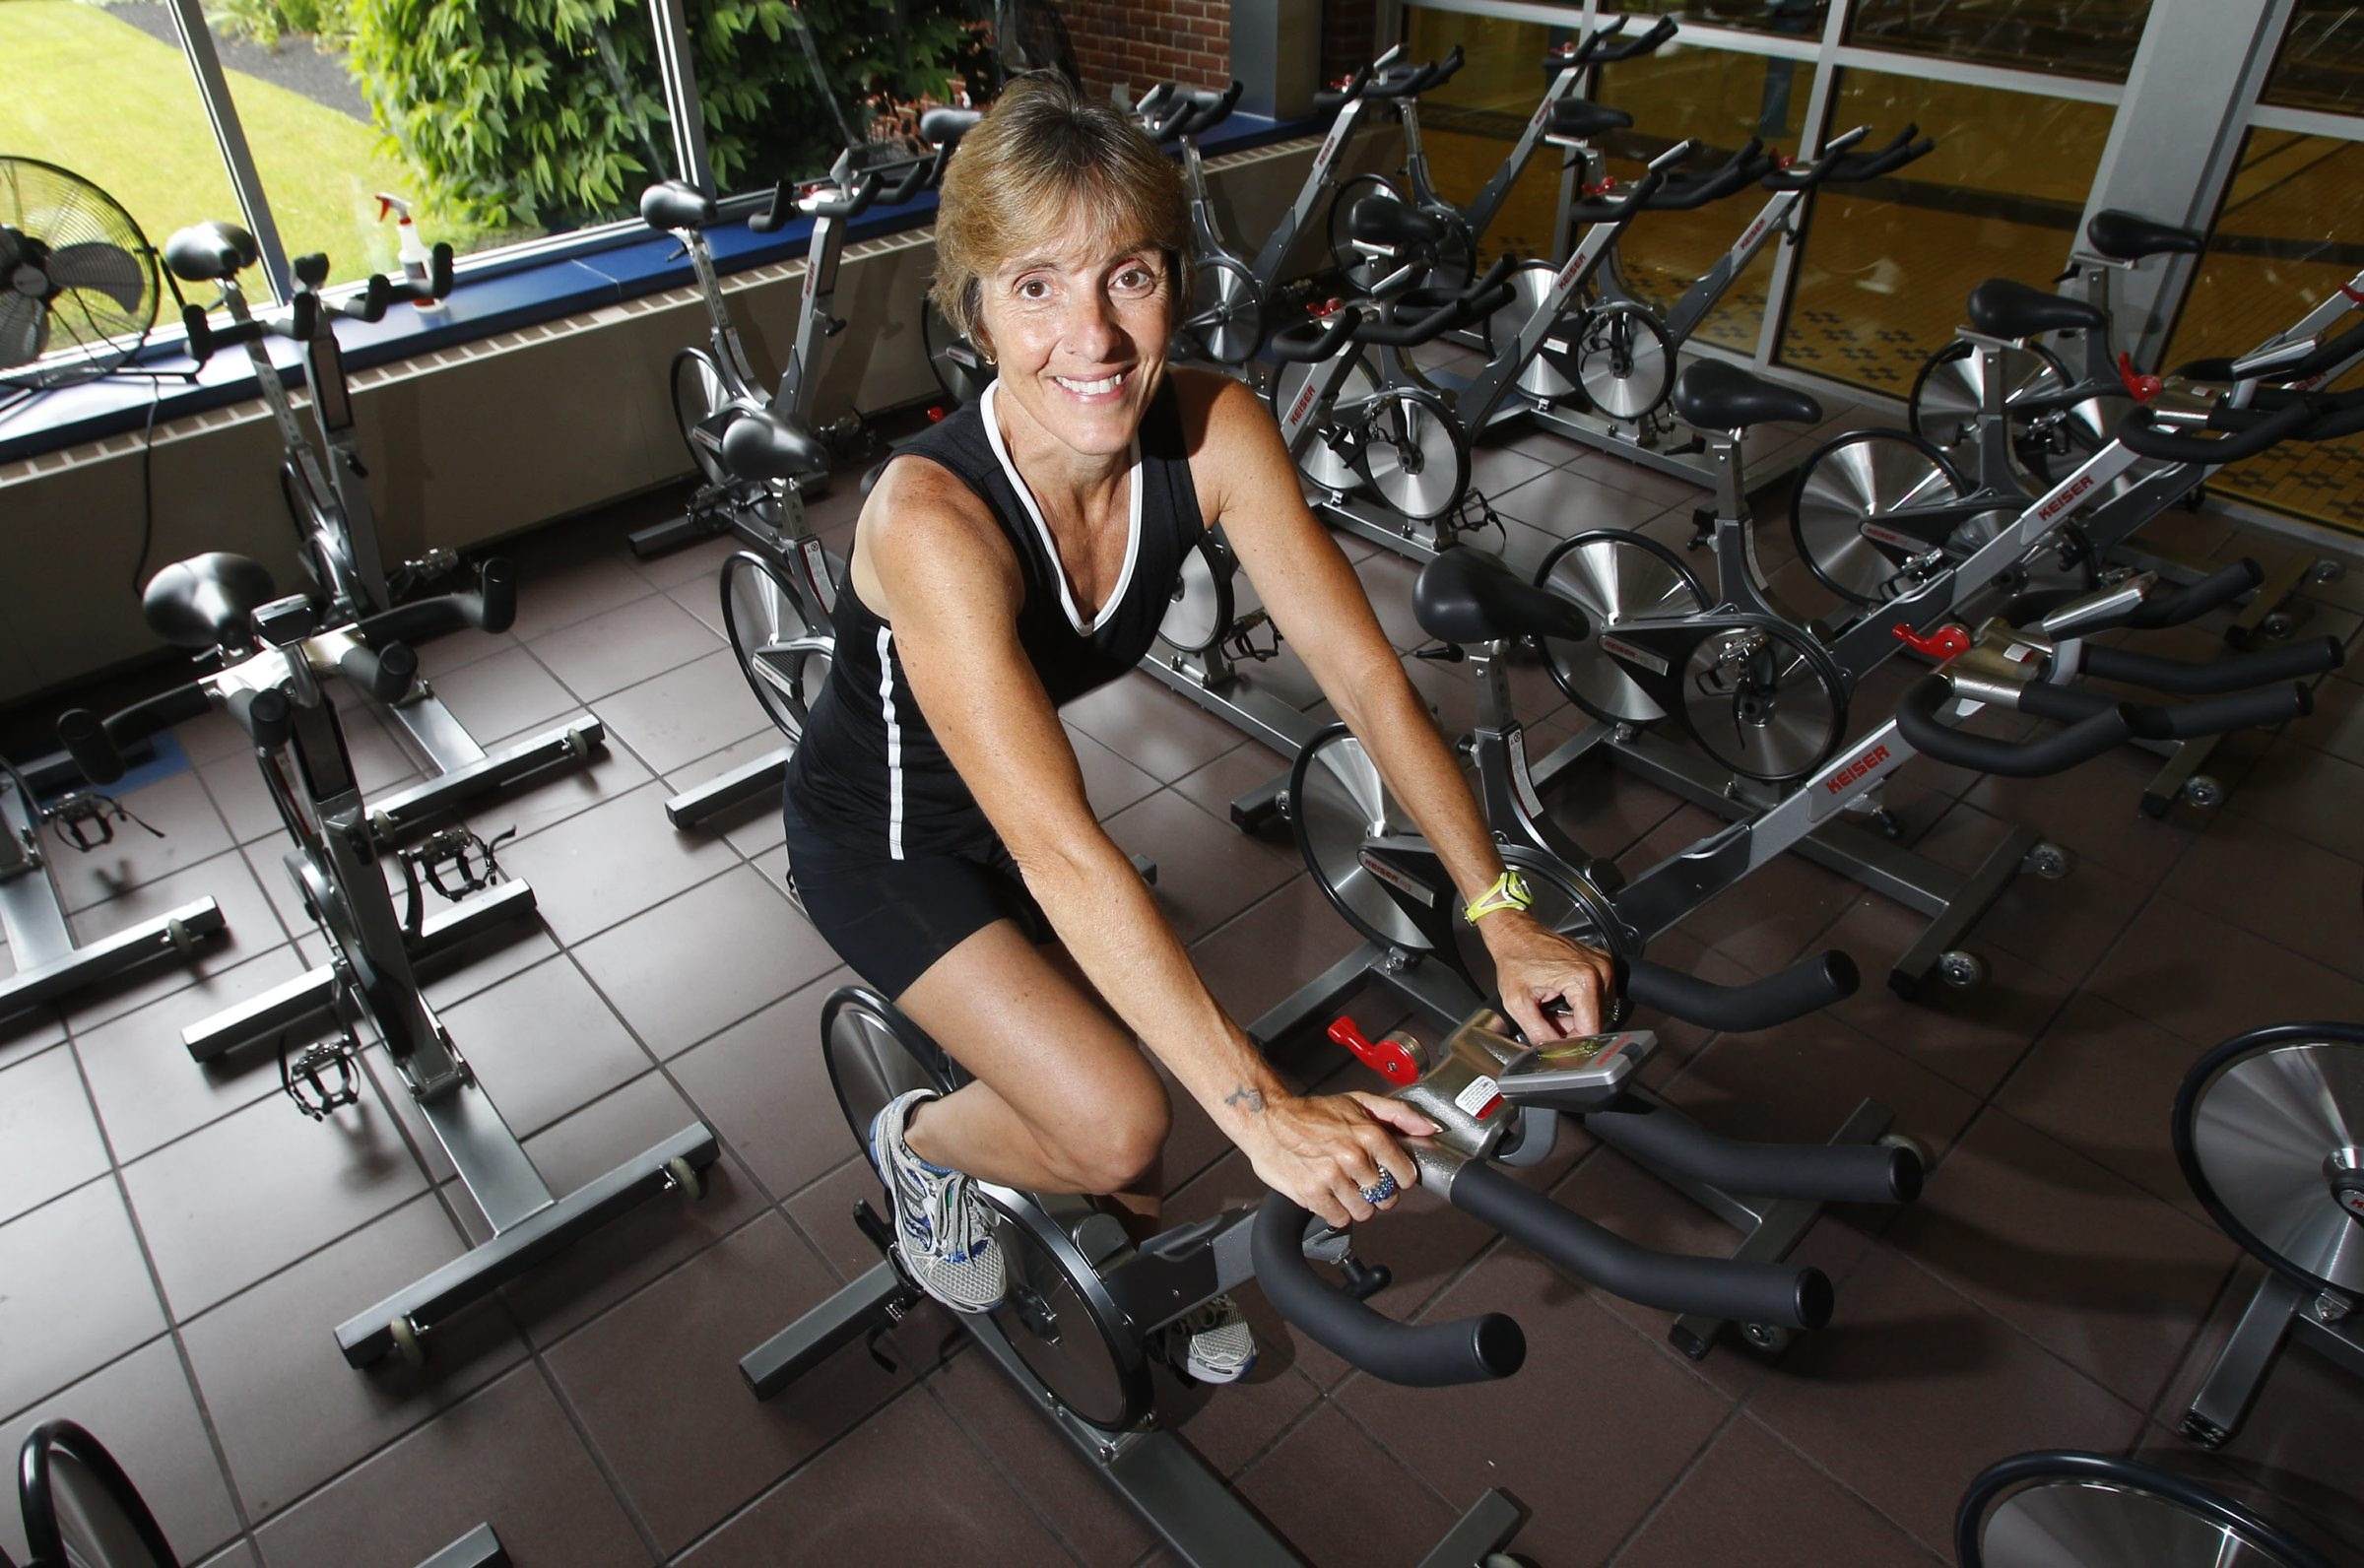 Carol DeNysschen, associate professor in dietetics and nutrition, believes in physical activity and healthy eating to promote good health.